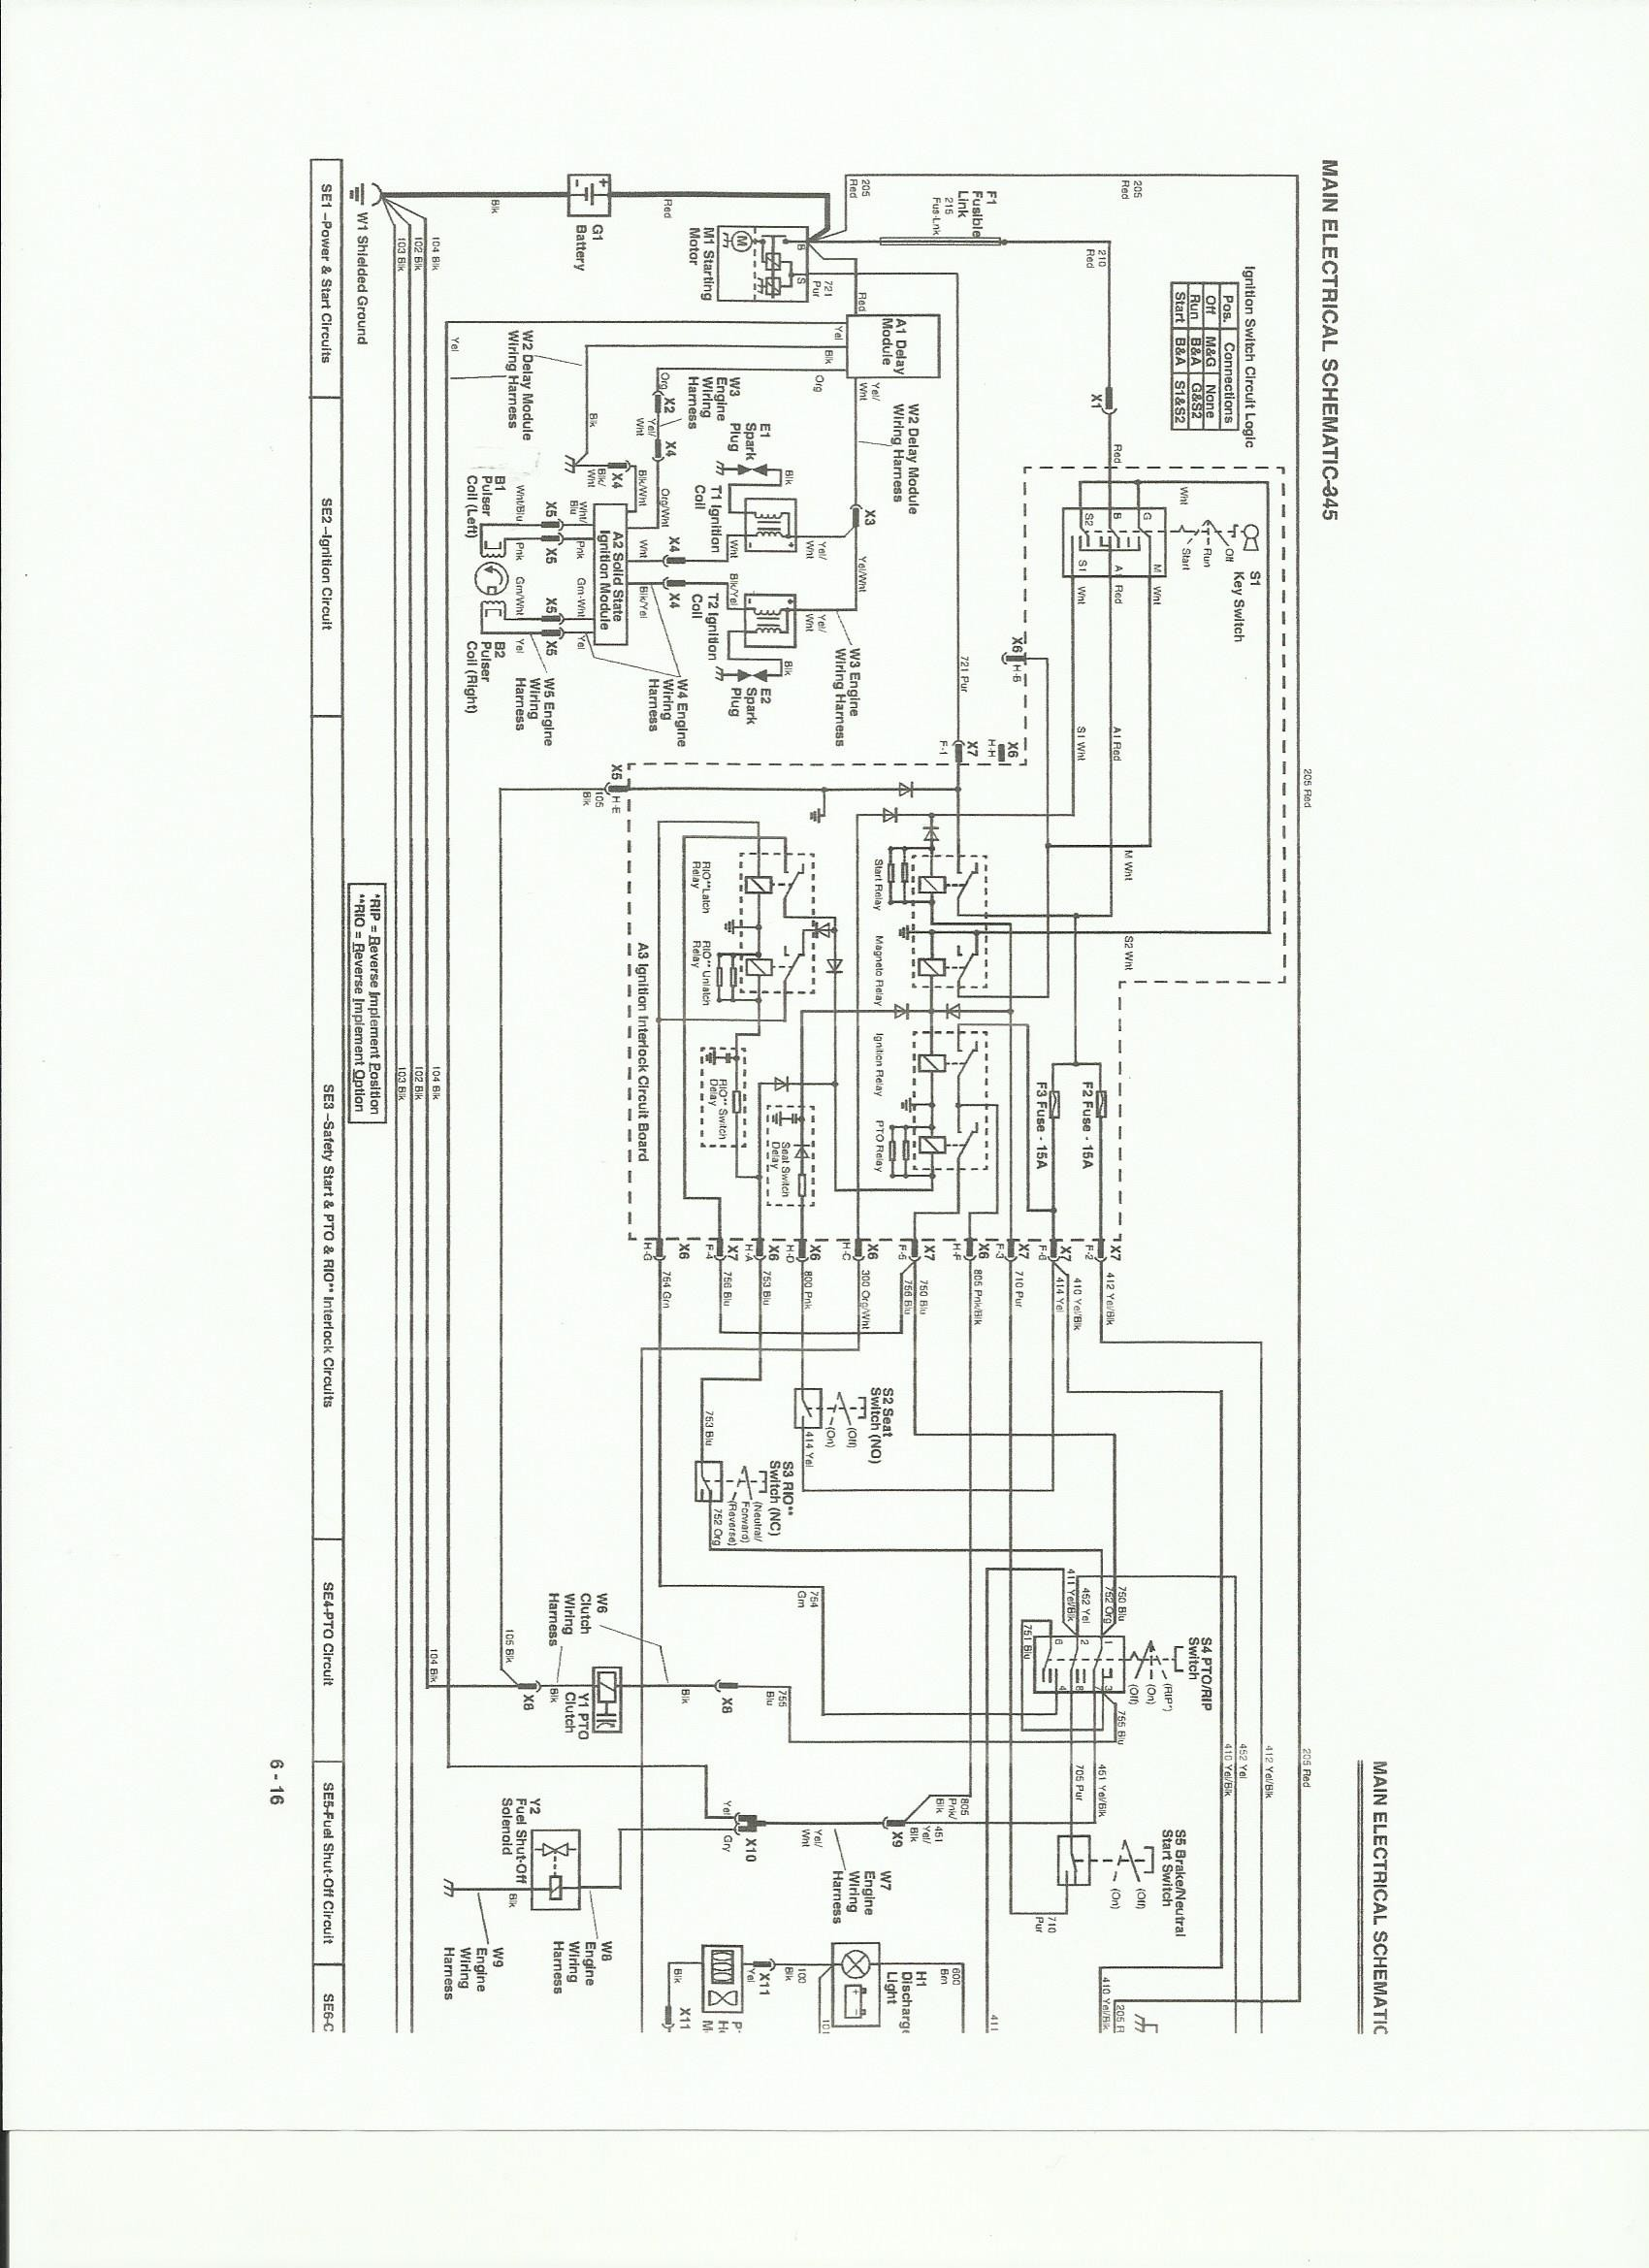 Jd 345 Wiring Diagram John Deere Z425 Wiring Diagram Free Rain Of Jd 345 Wiring Diagram